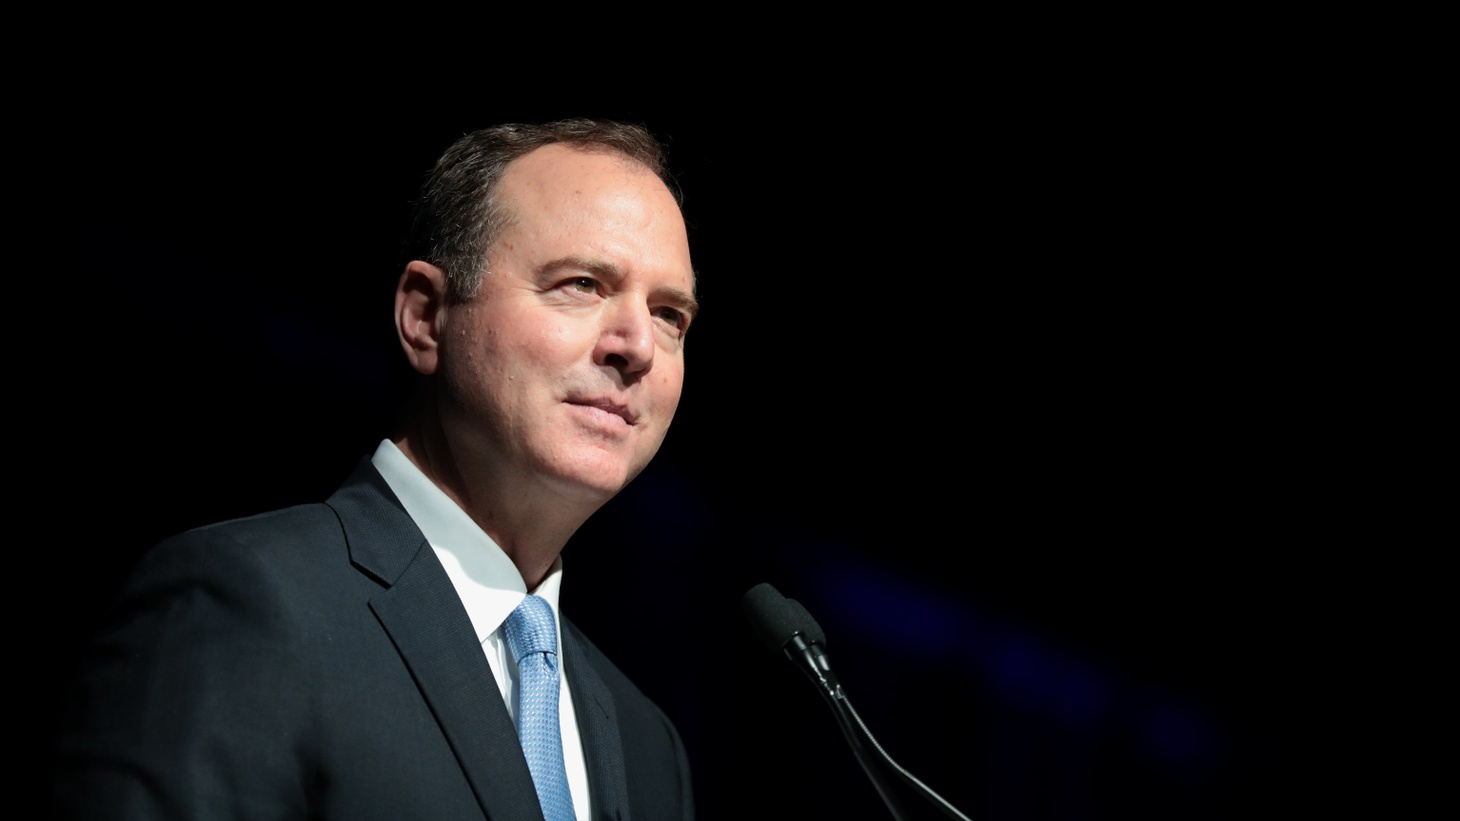 U.S. Congressman Adam Schiff speaking with attendees at the 2019 California Democratic Party State Convention in San Francisco.